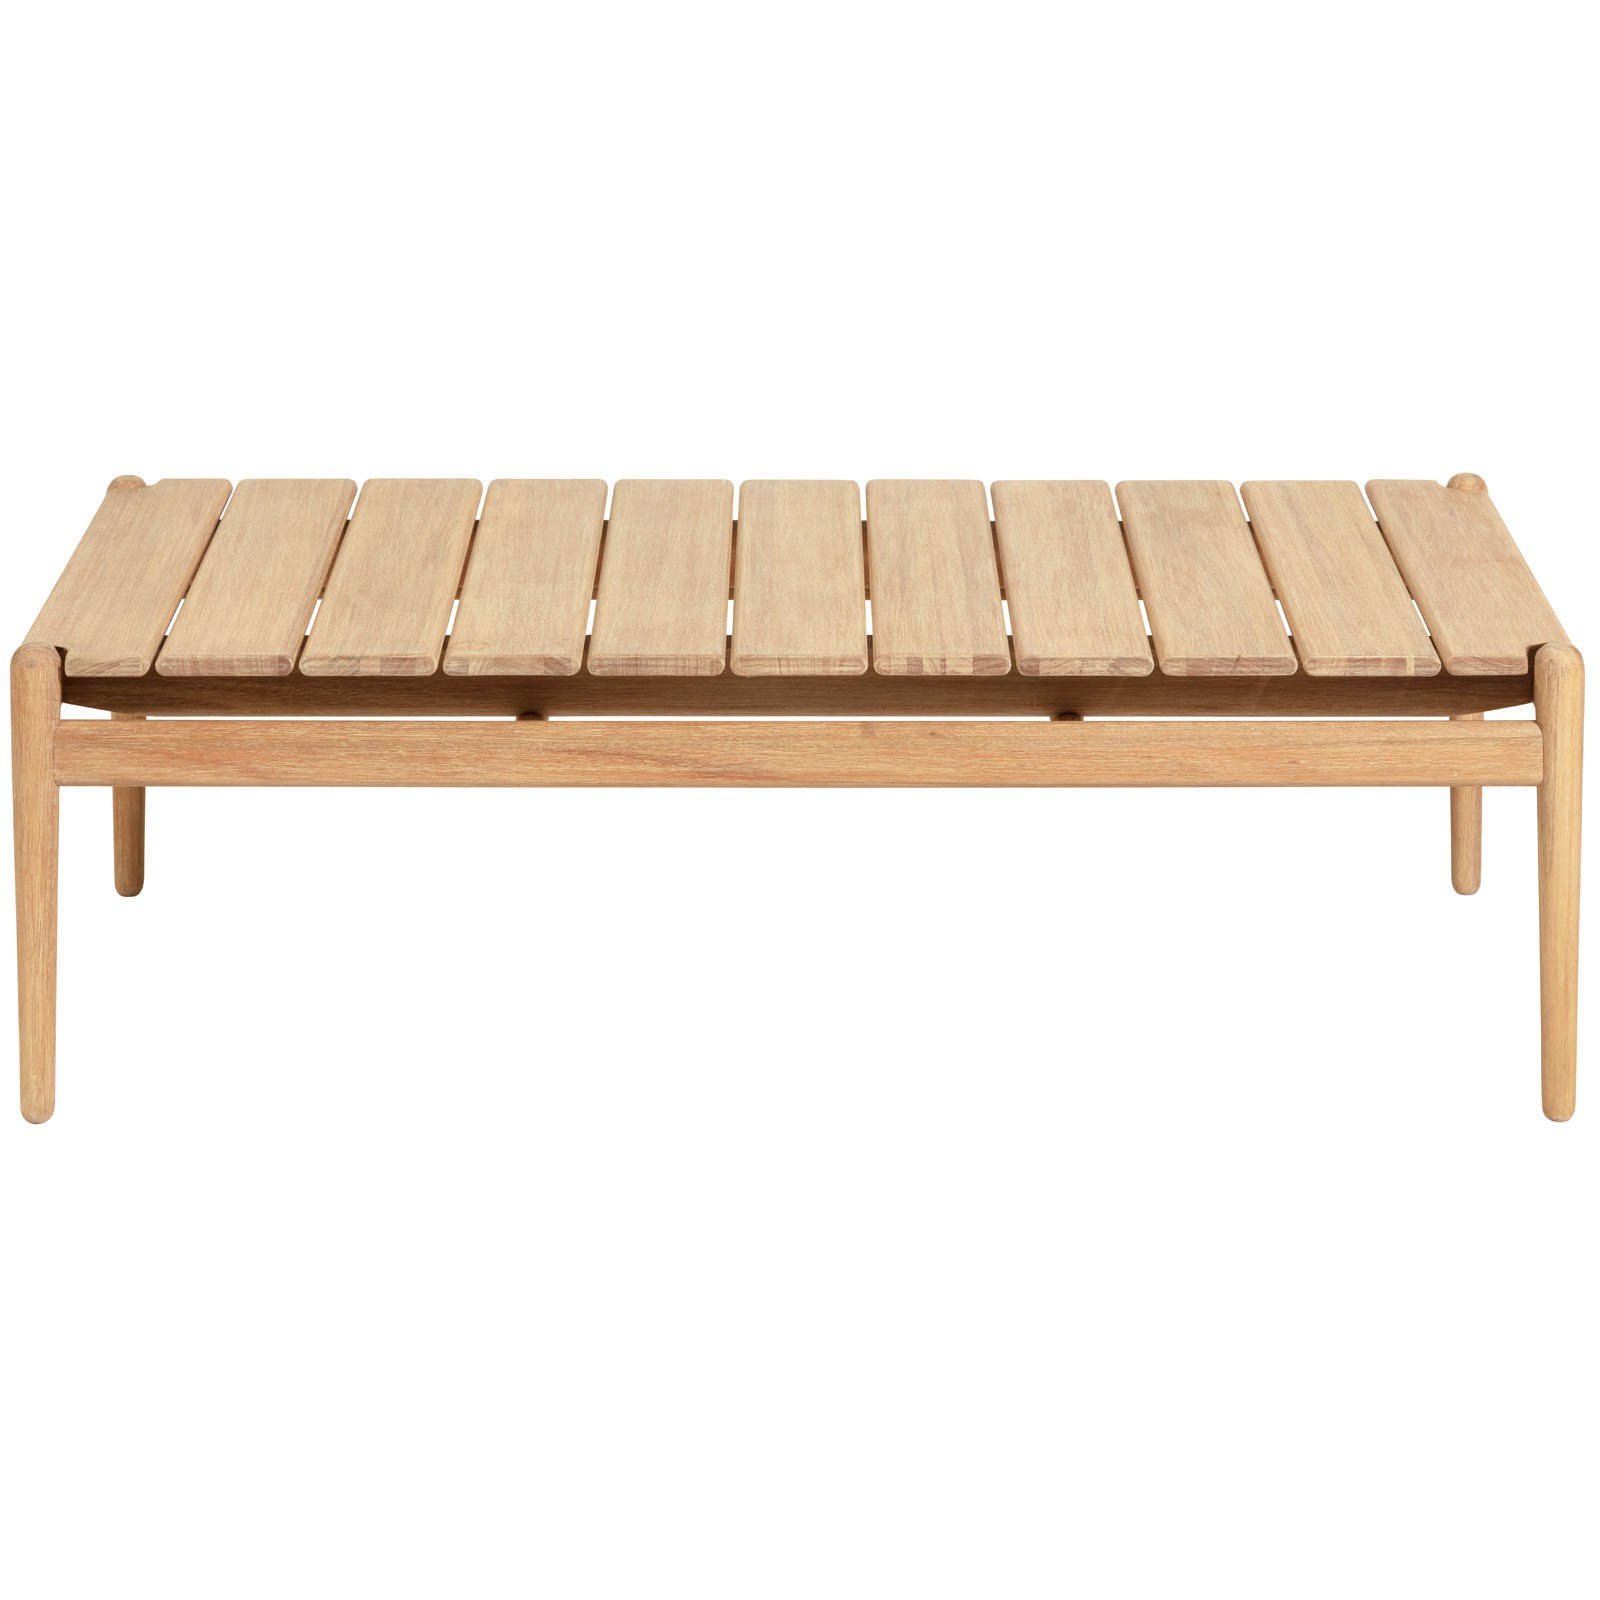 Lomond Eucalyptus Timber Alfresco Coffee Table, 117cm